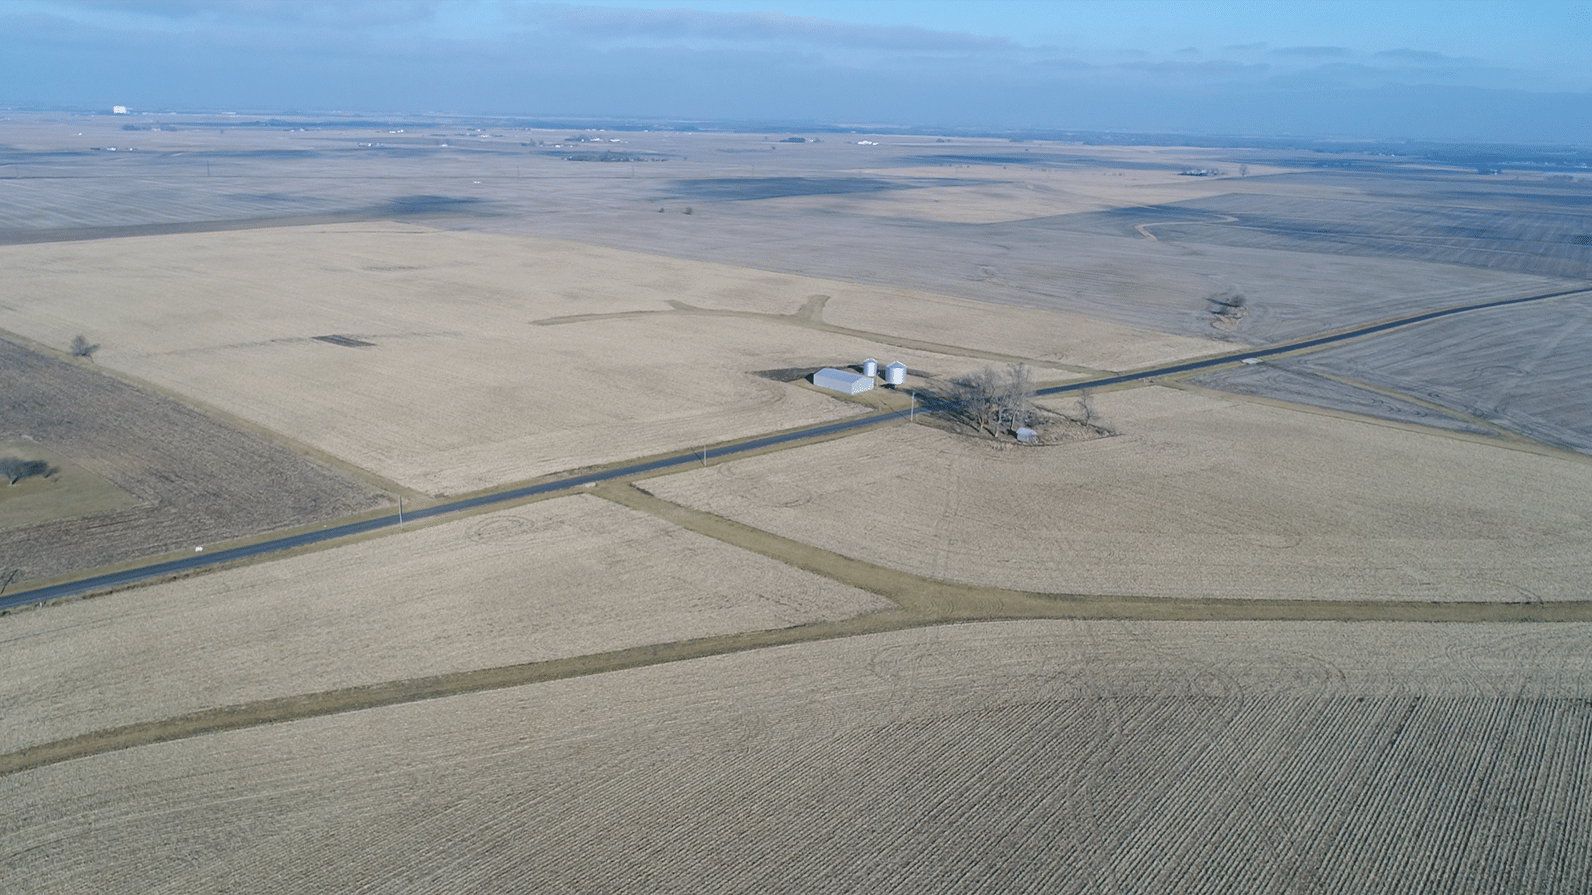 Champaign Co Auction 208 Ac - Feb 18 2020 - Looking Northeast